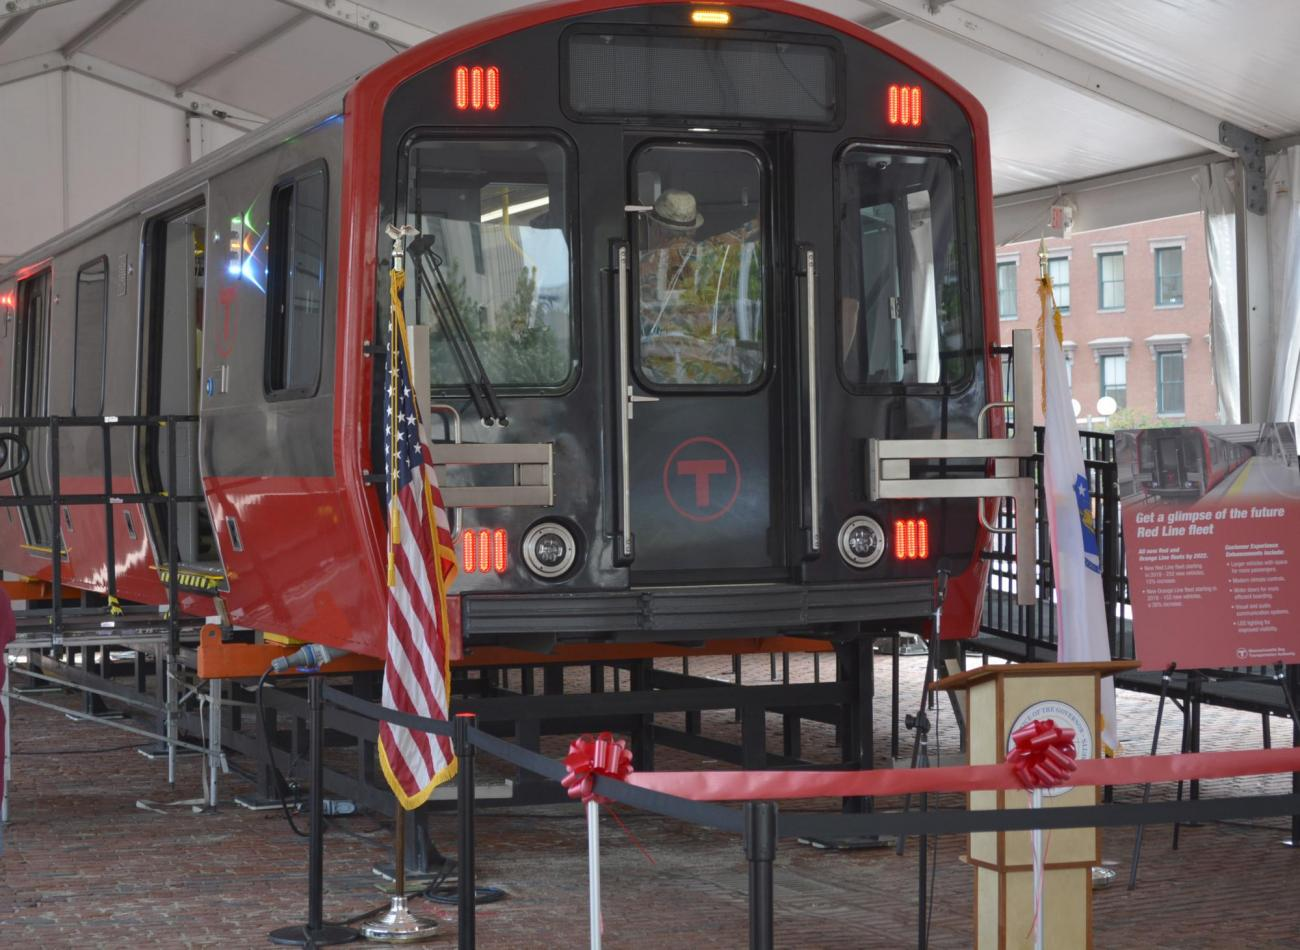 Red Line mock-up car on display in City Hall Plaza